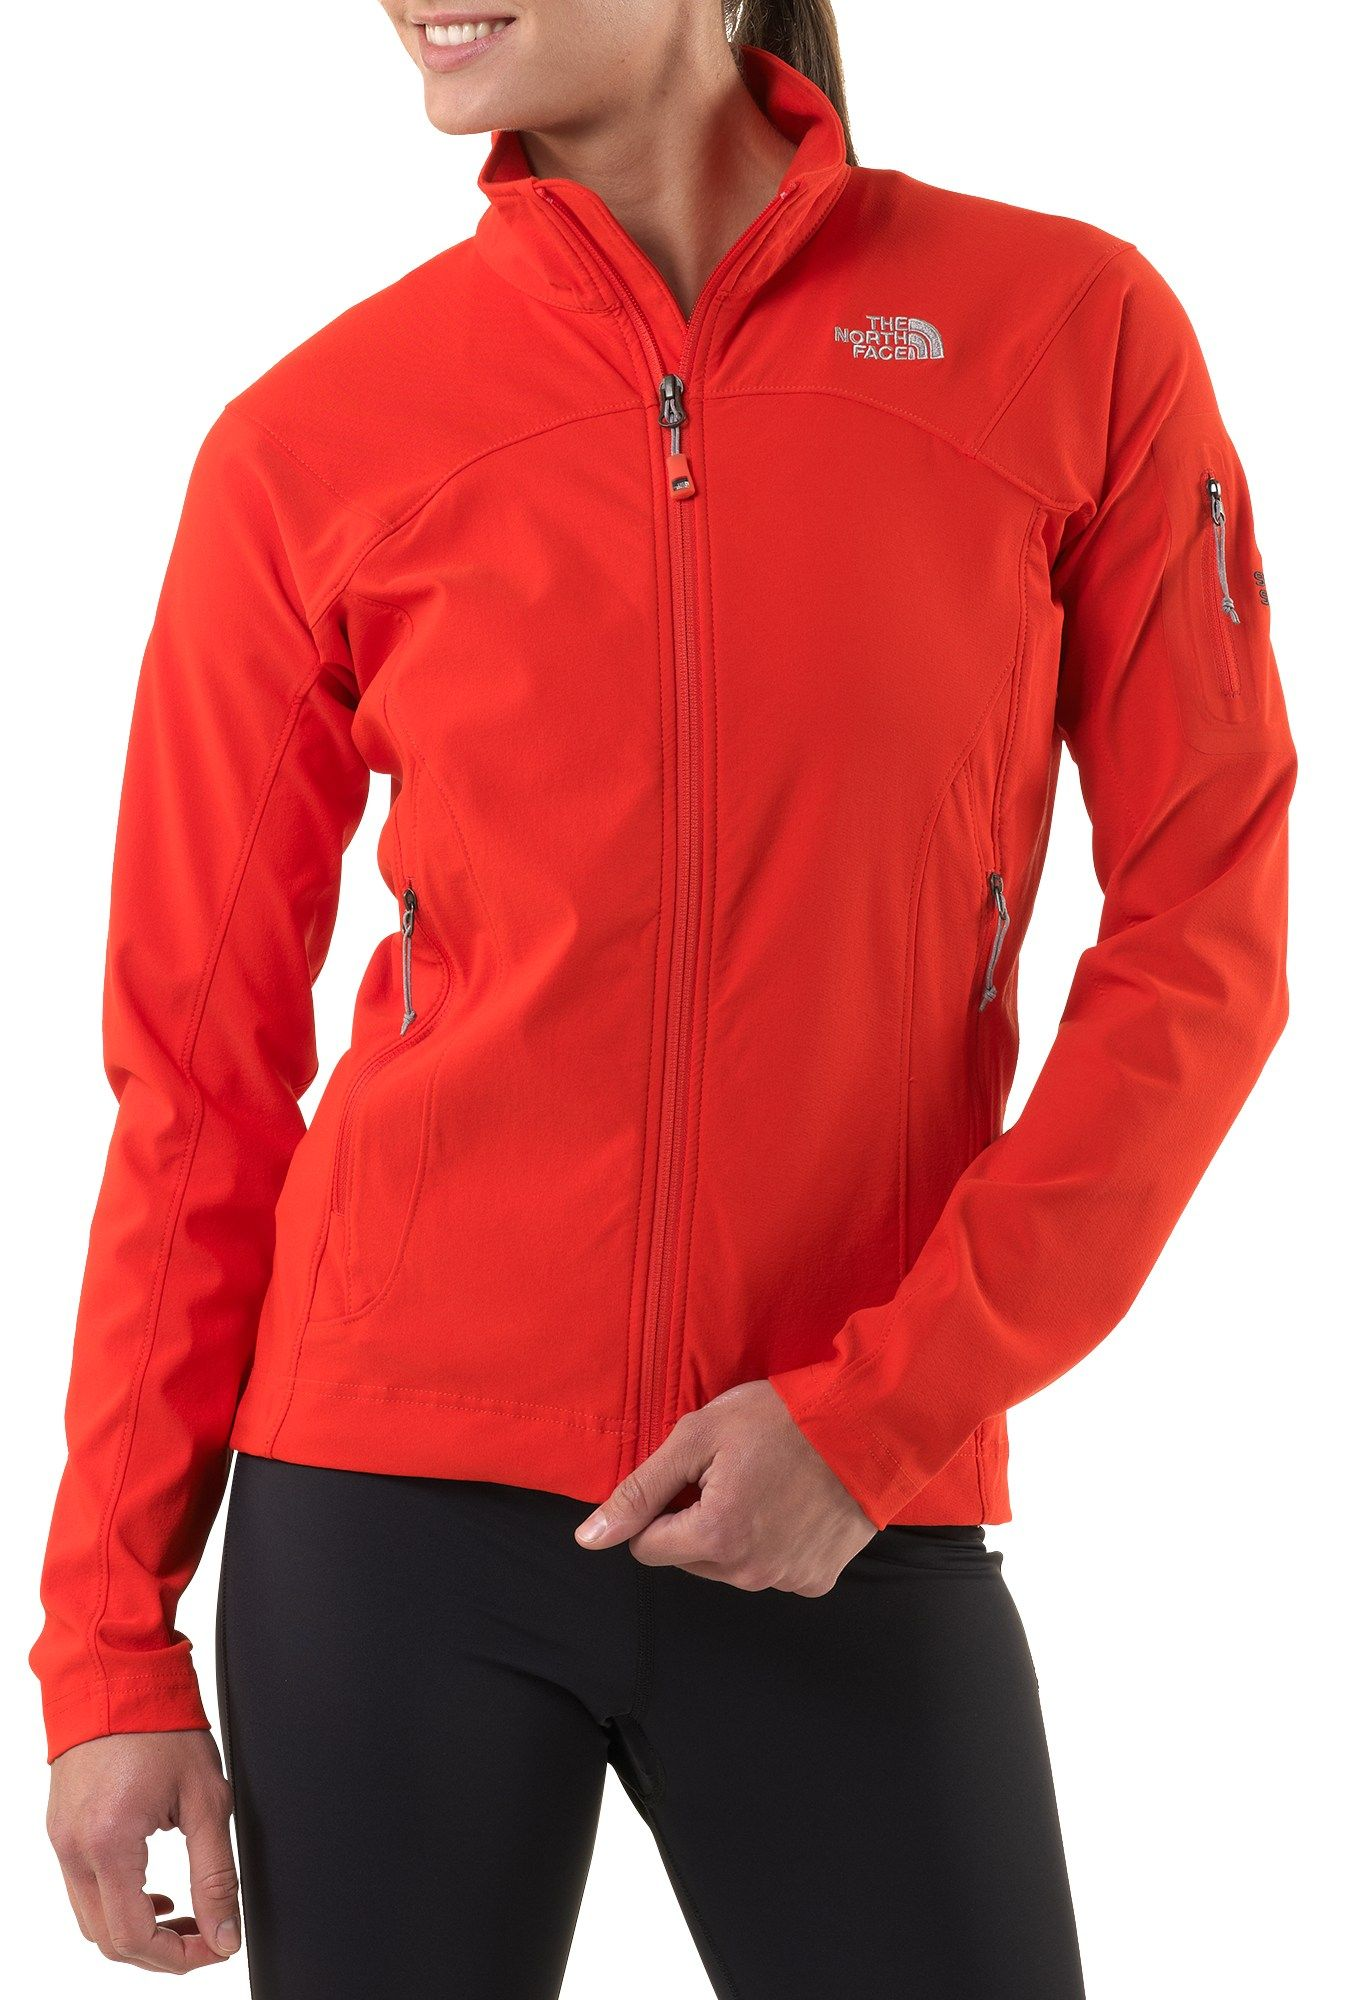 The North Face Apex Elixir Jacket Women S Free Shipping At Rei Com Jackets For Women Jackets North Face Women [ 2000 x 1345 Pixel ]